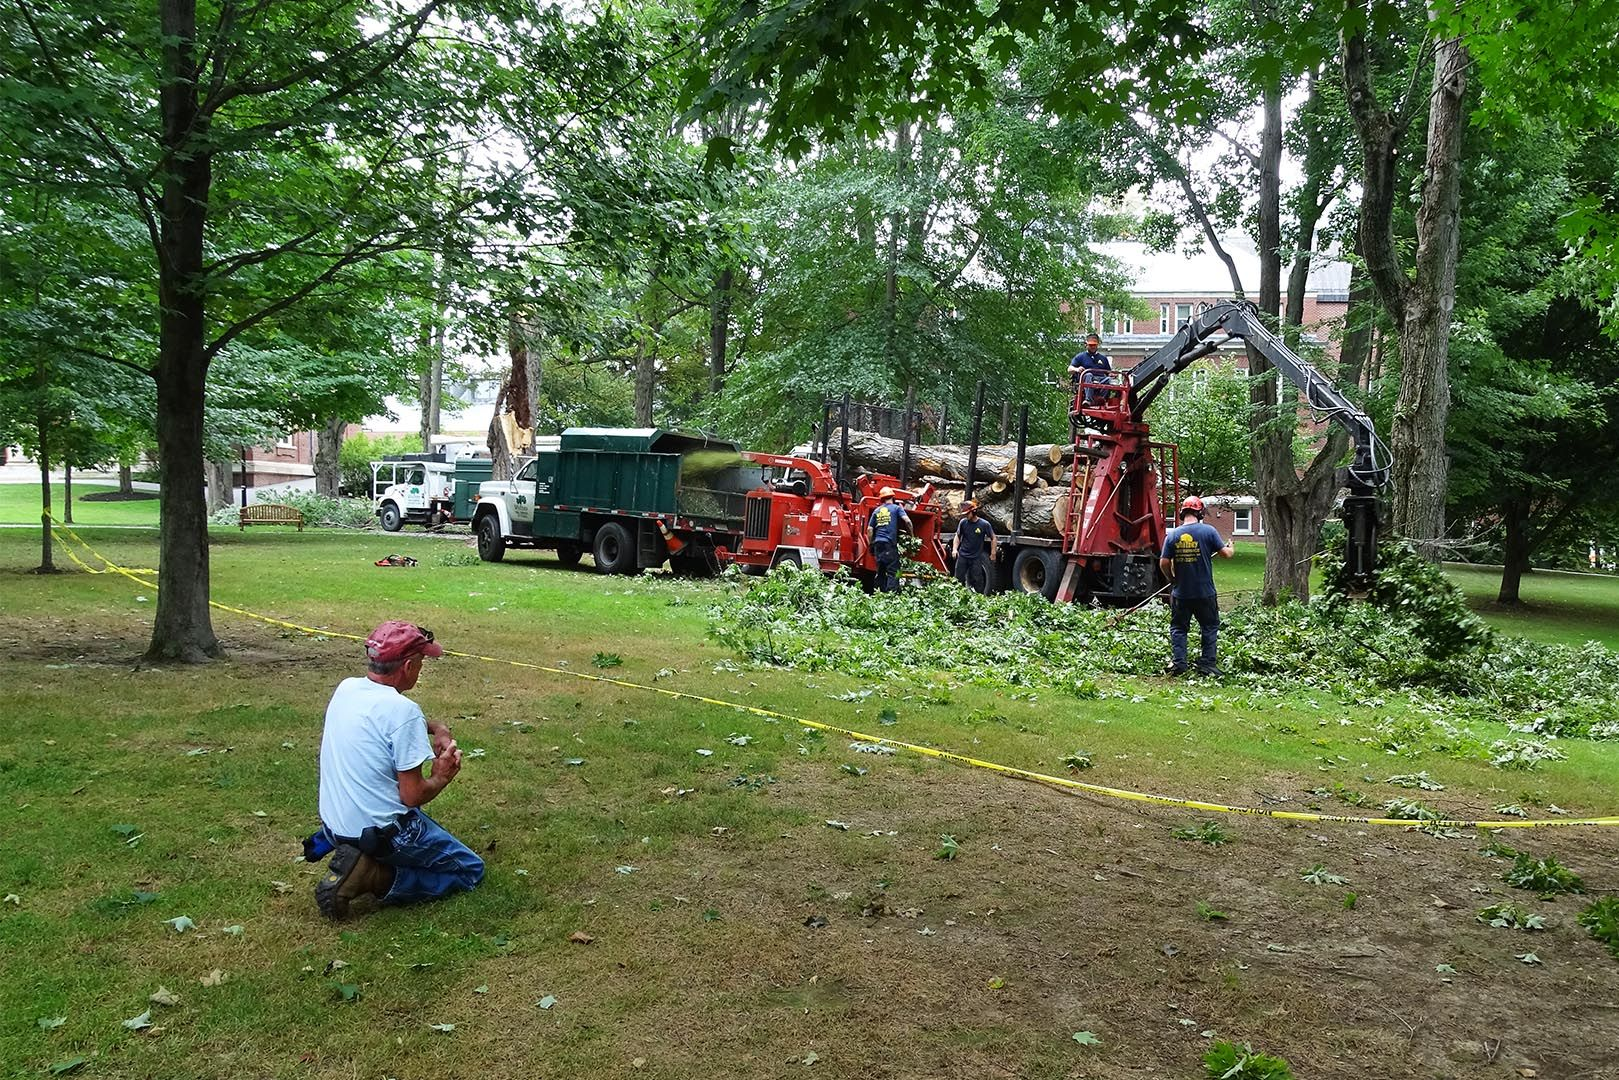 Mike Adams of the college's grounds crew takes a minute to watch the tree removal on July 29. (Jay Burns / Bates College)